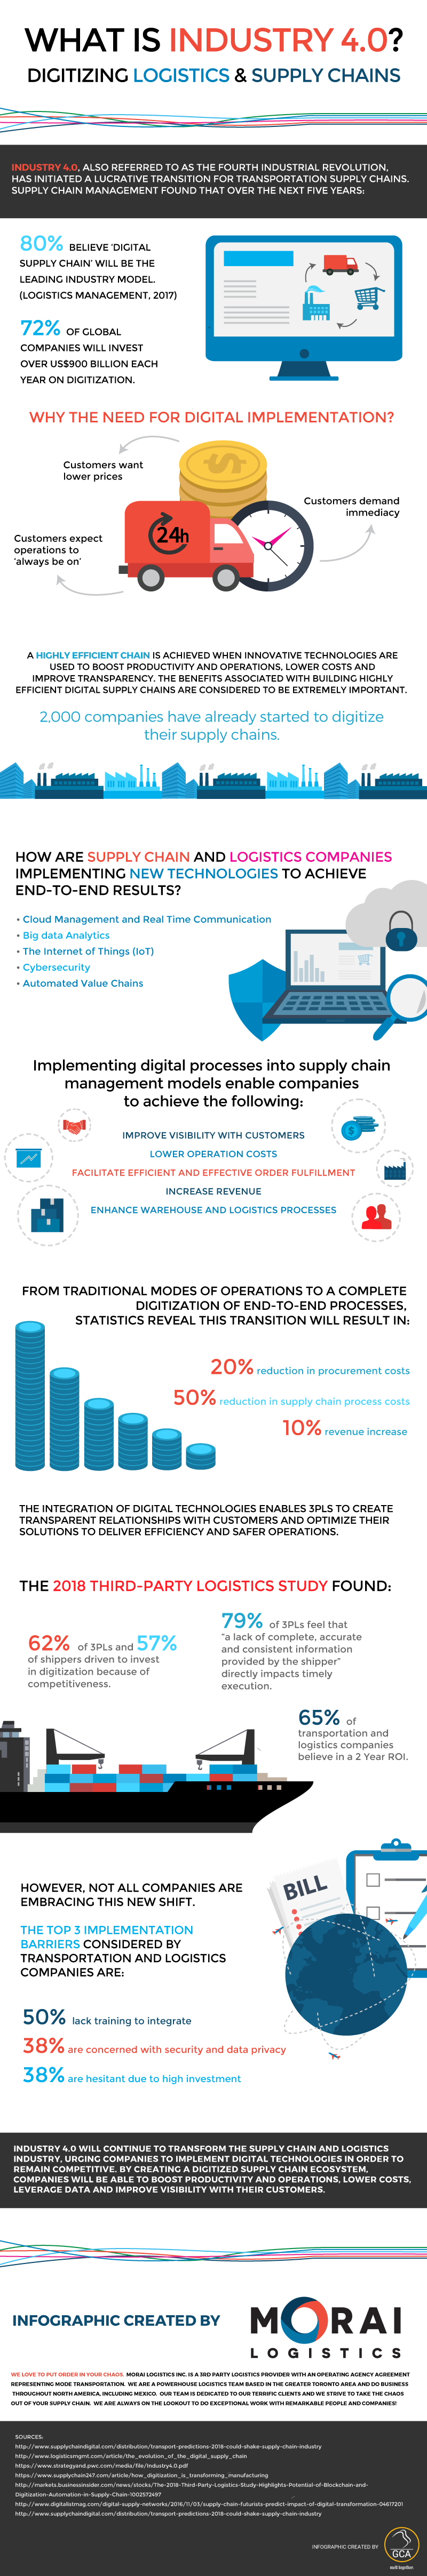 morai-logistics-infographic-industry-40